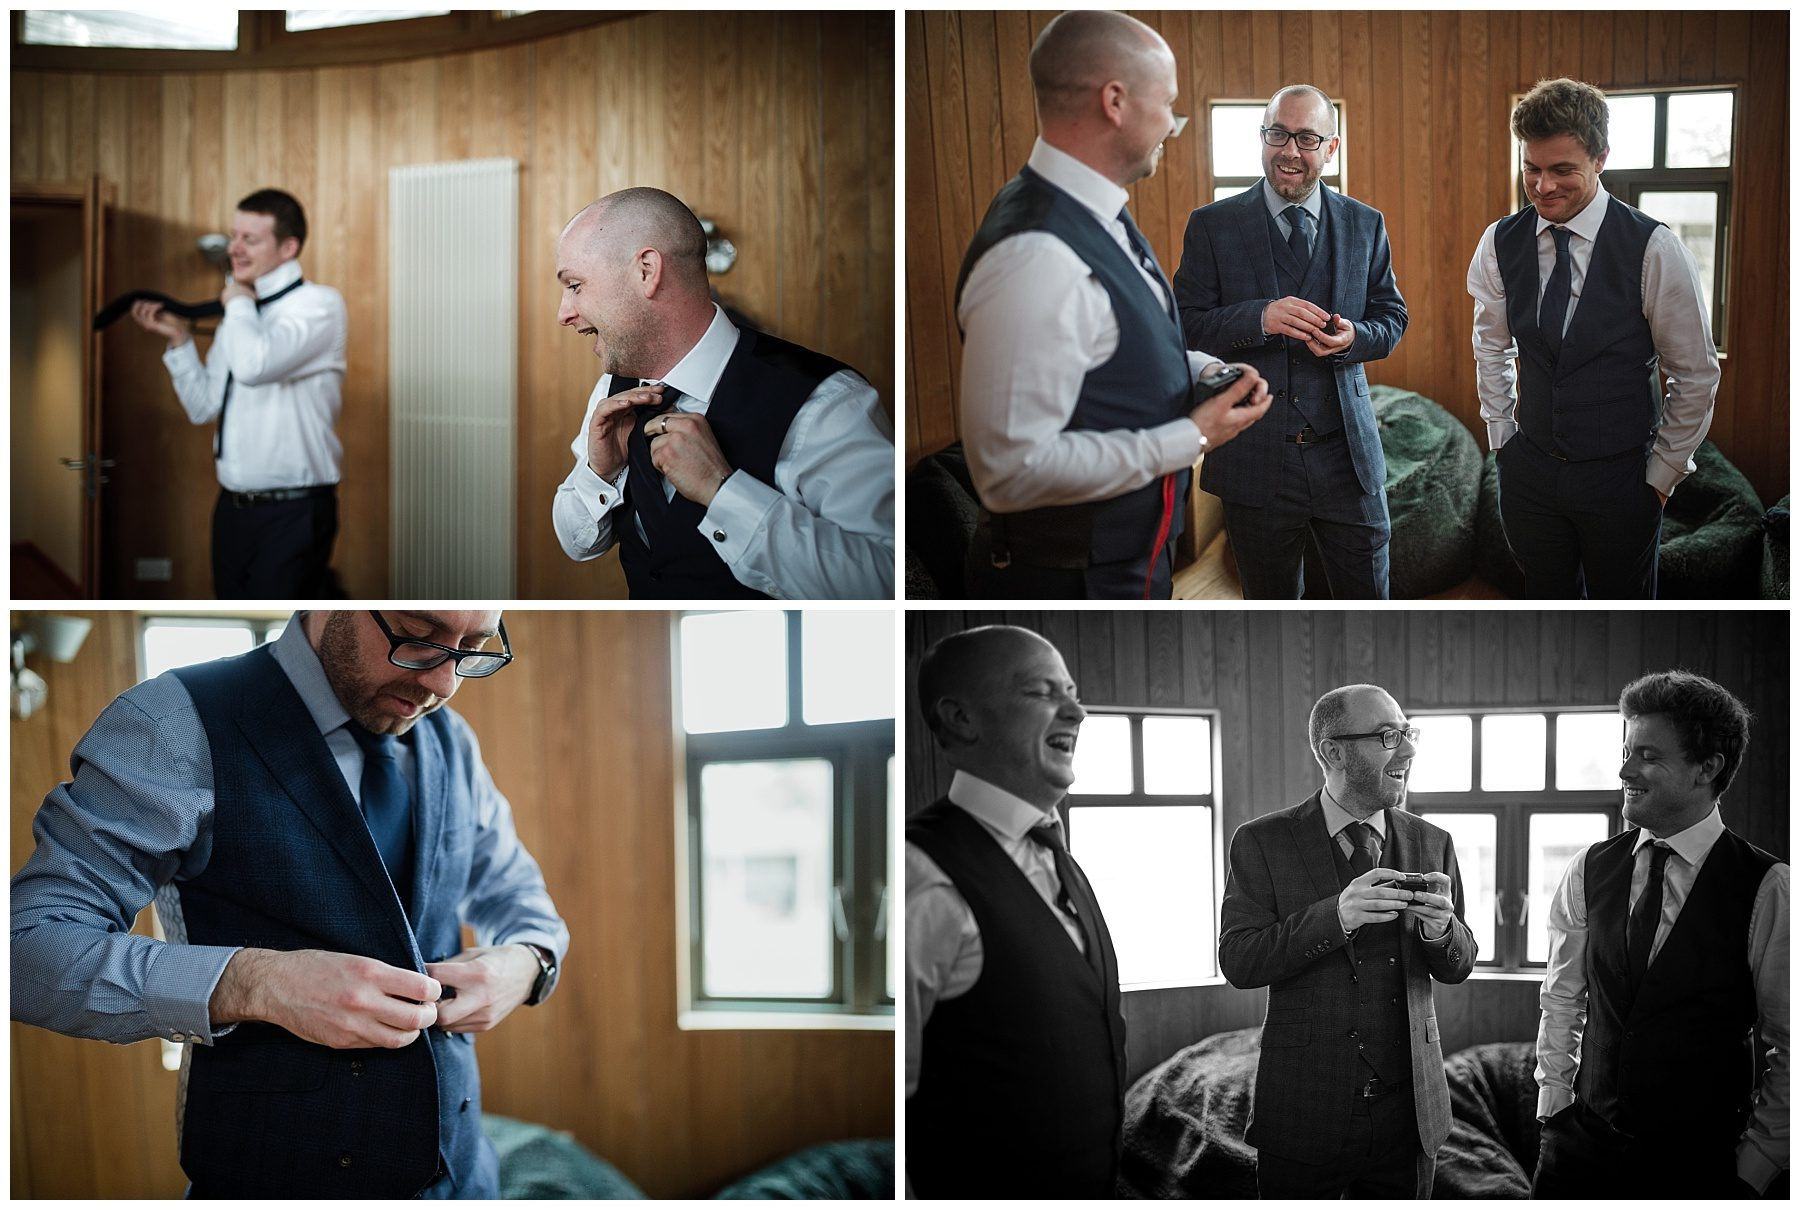 Groom and ushers getting dressed at Sheepdrove Farm